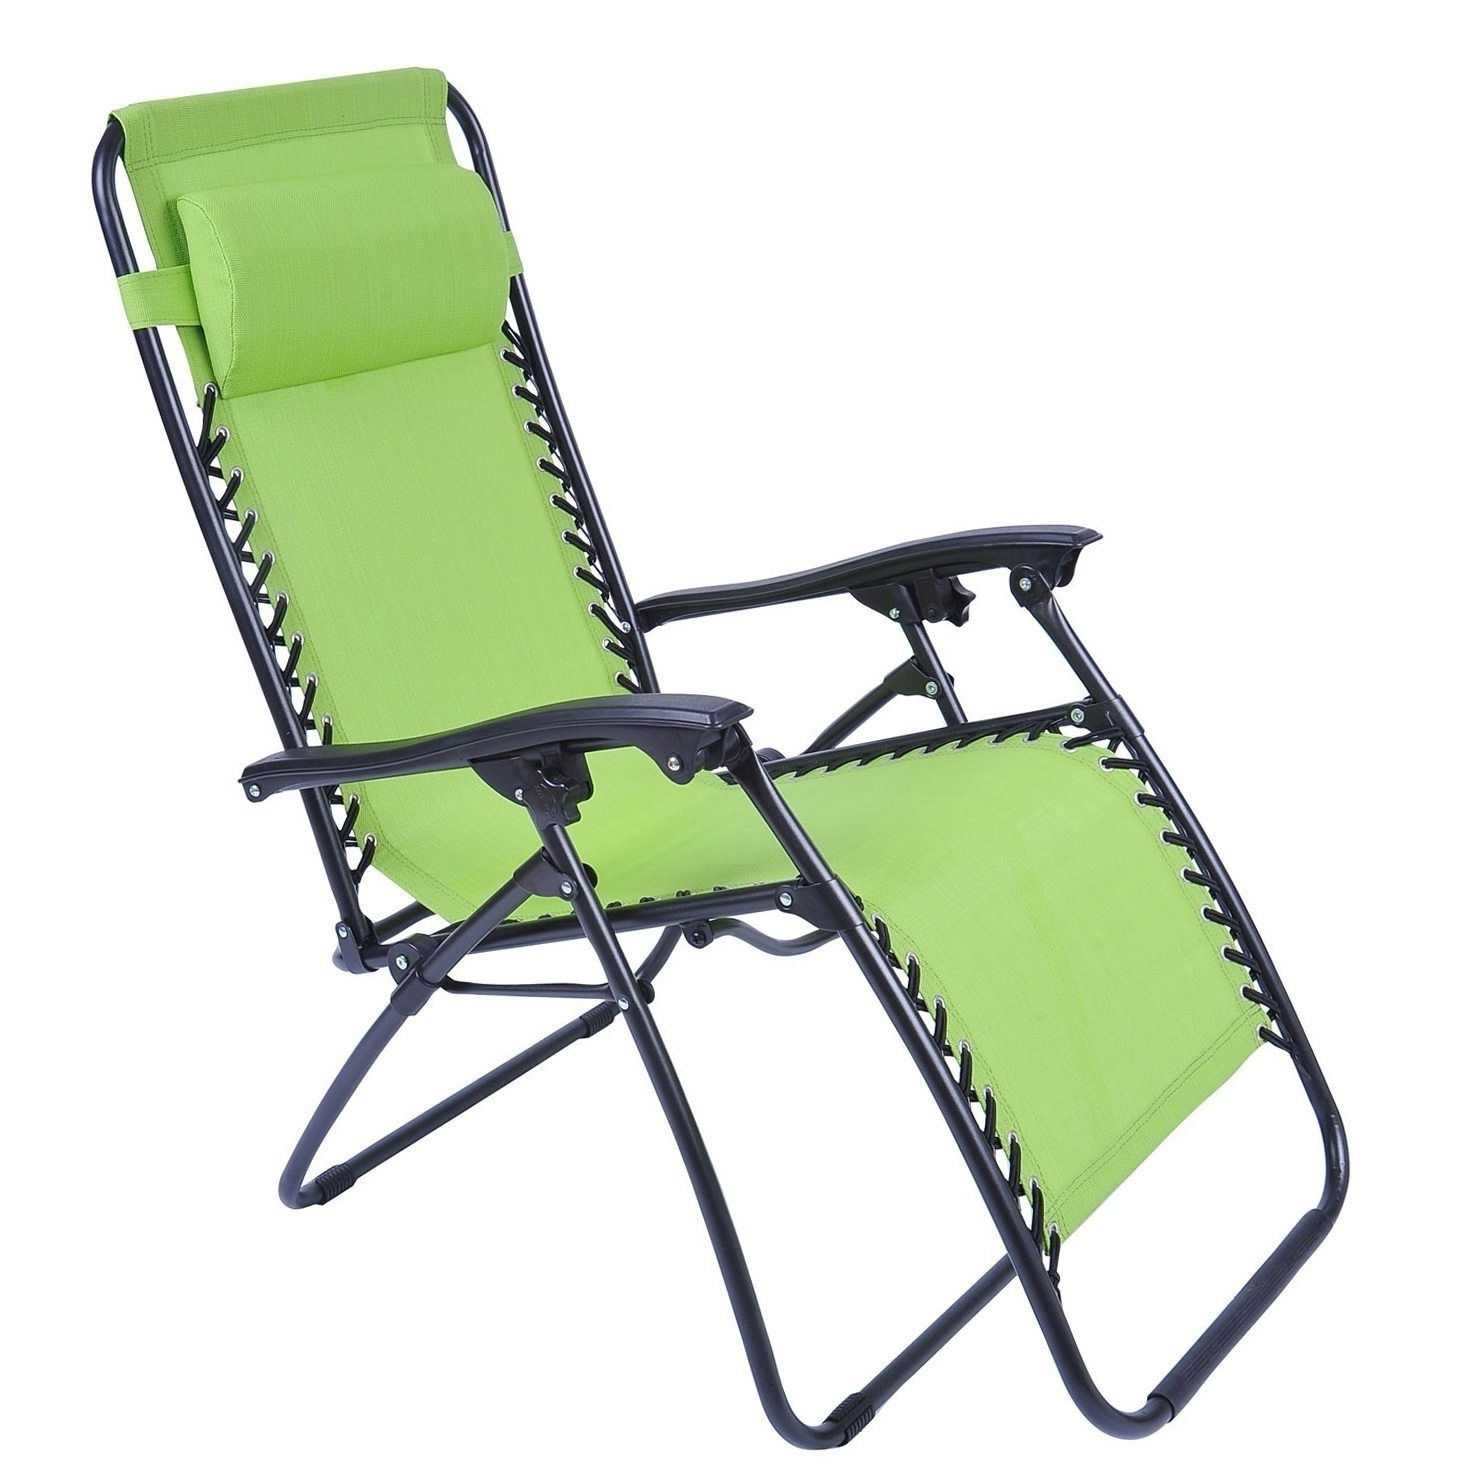 Famous Lounge Chair Outdoor Folding Folding Chaise Lounge Chair Patio Inside Folding Chaise Lounge Chairs (View 11 of 15)